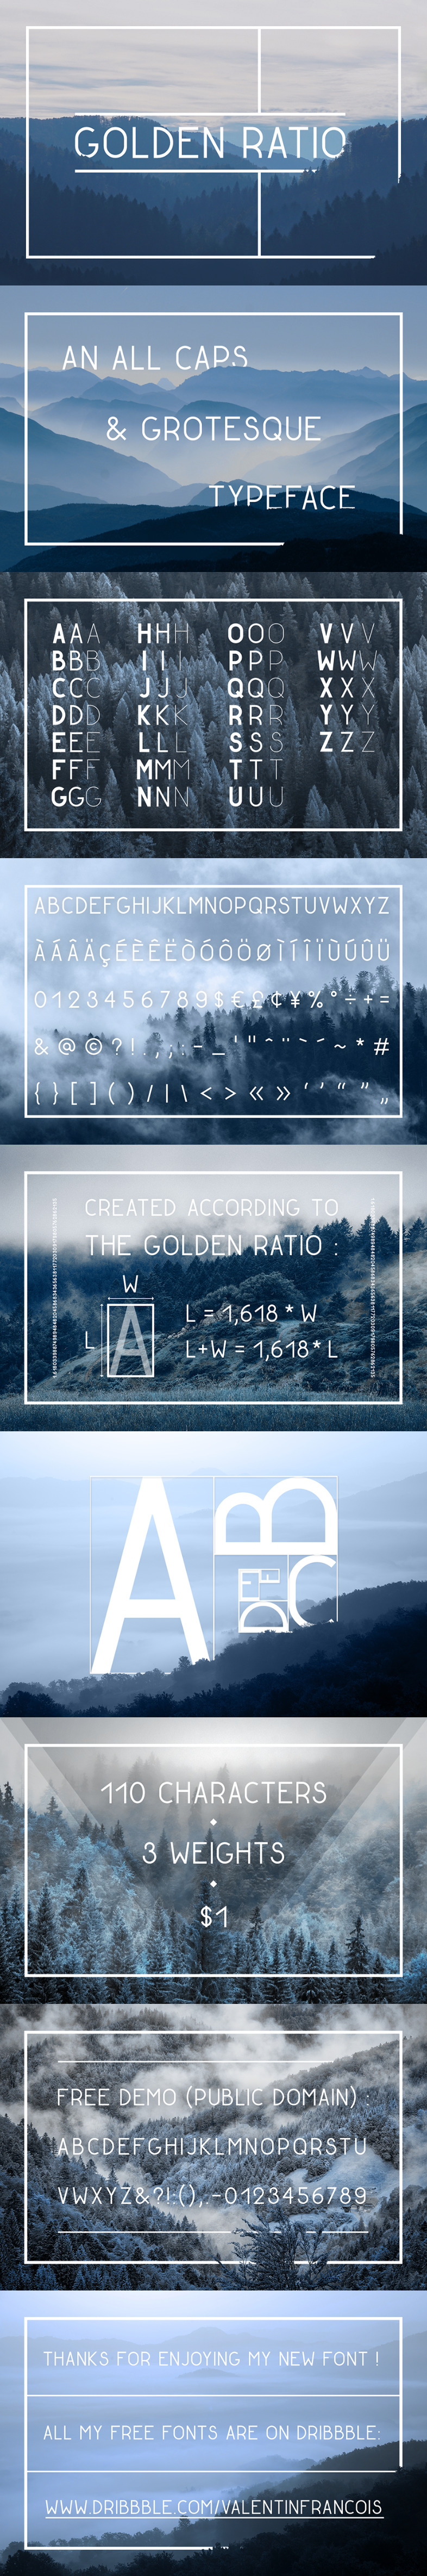 Golden Ratio T